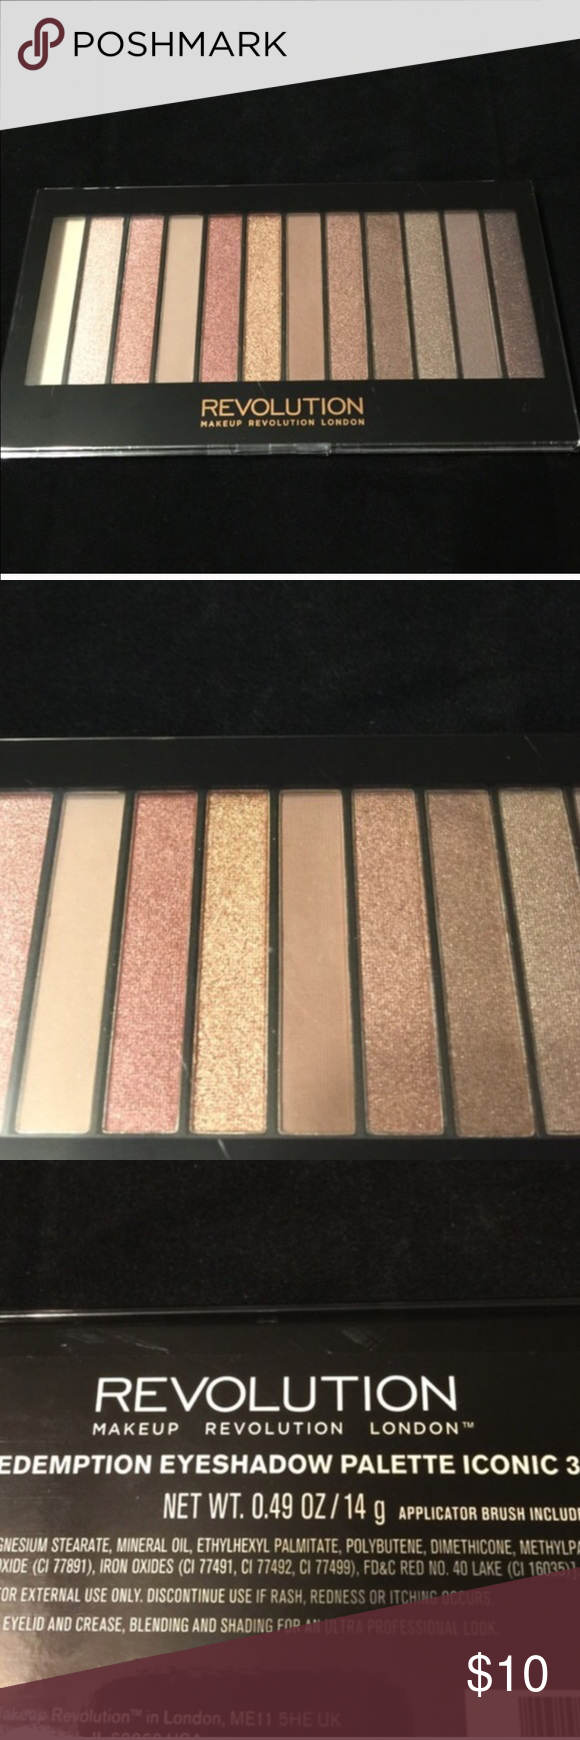 Makeup Revolution Eyeshadow Palette 3 Makeup Revolution Eyeshadow Iconic Palette 3. Very comparable palette to the Urban Decay Naked 3 but at a cheaper price. Never Opened. Never Used. Brand New. 😀 Sephora Makeup Eyeshadow